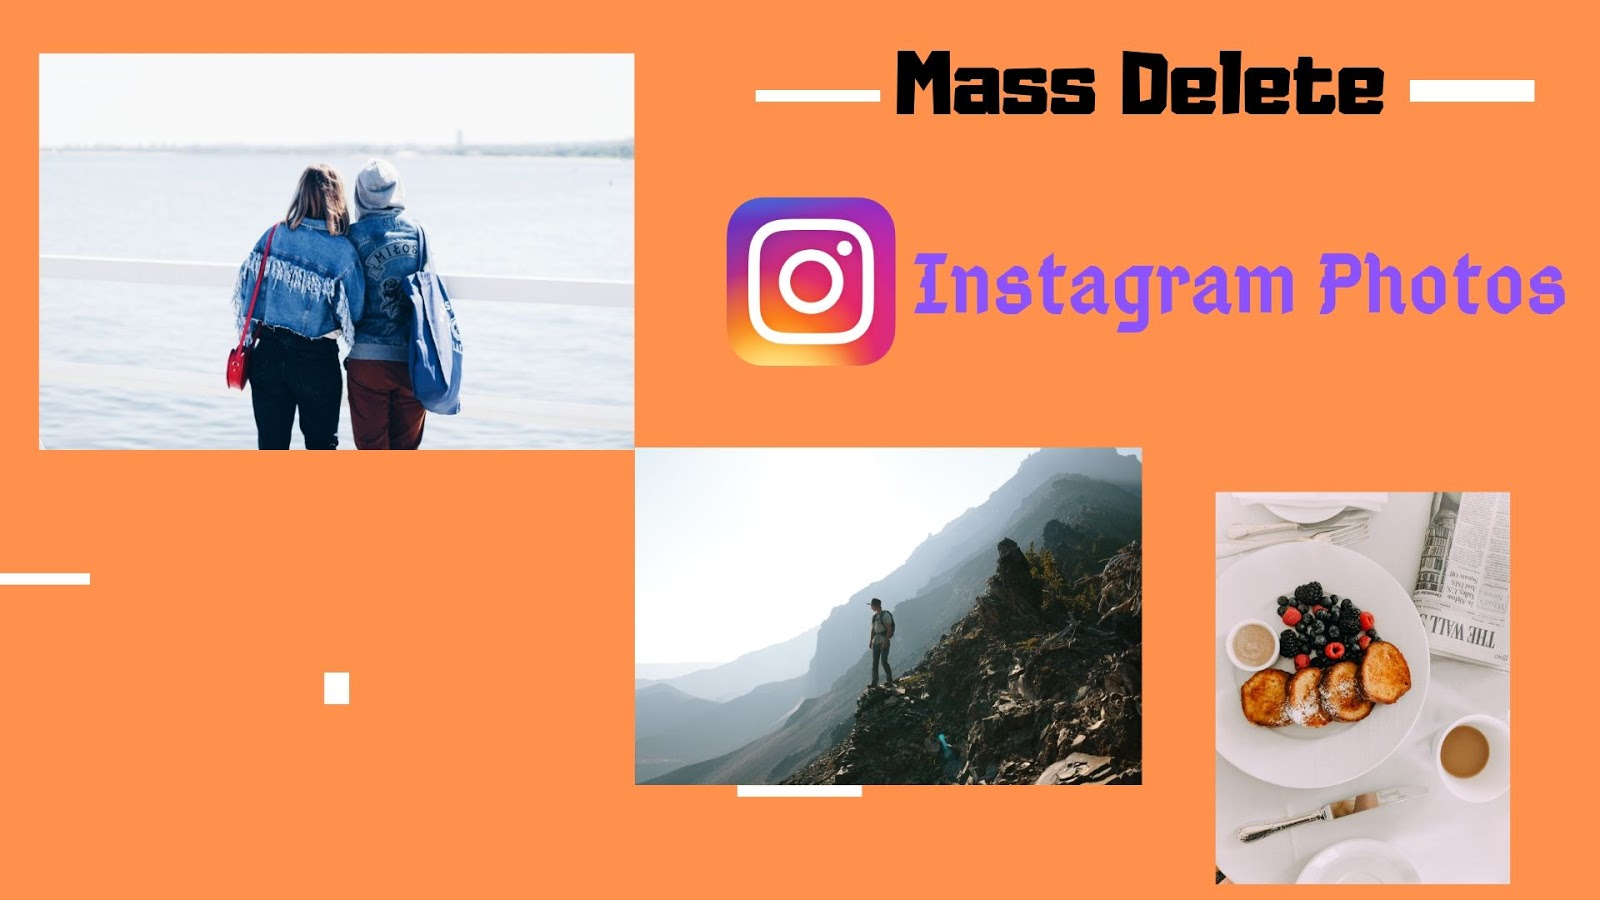 mass delete Instagram Photos no.1